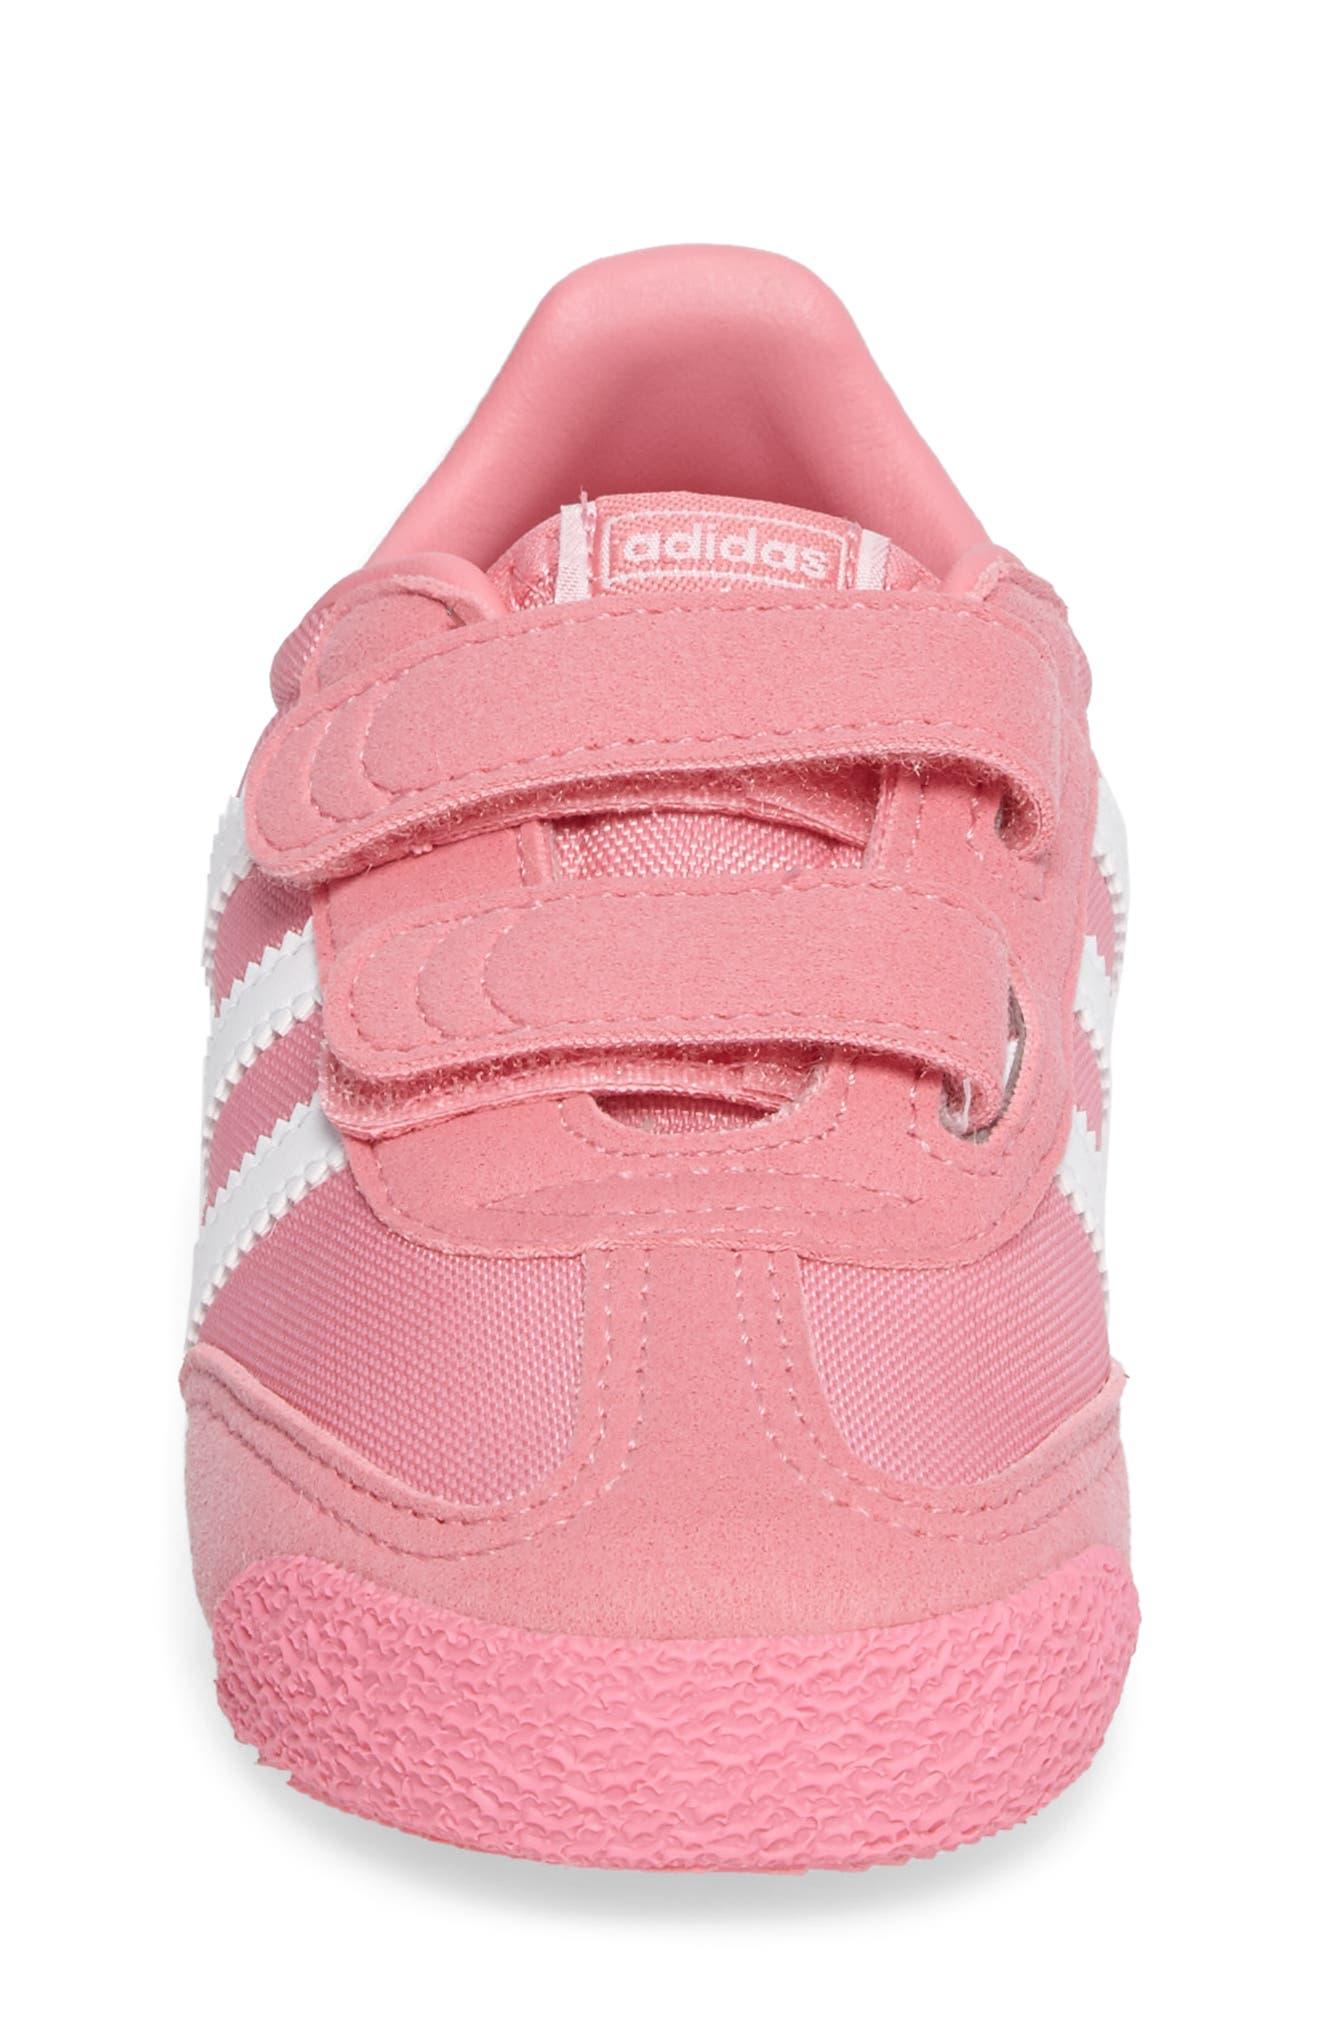 Dragon OG CF Athletic Shoe,                             Alternate thumbnail 4, color,                             Easy Pink/ White